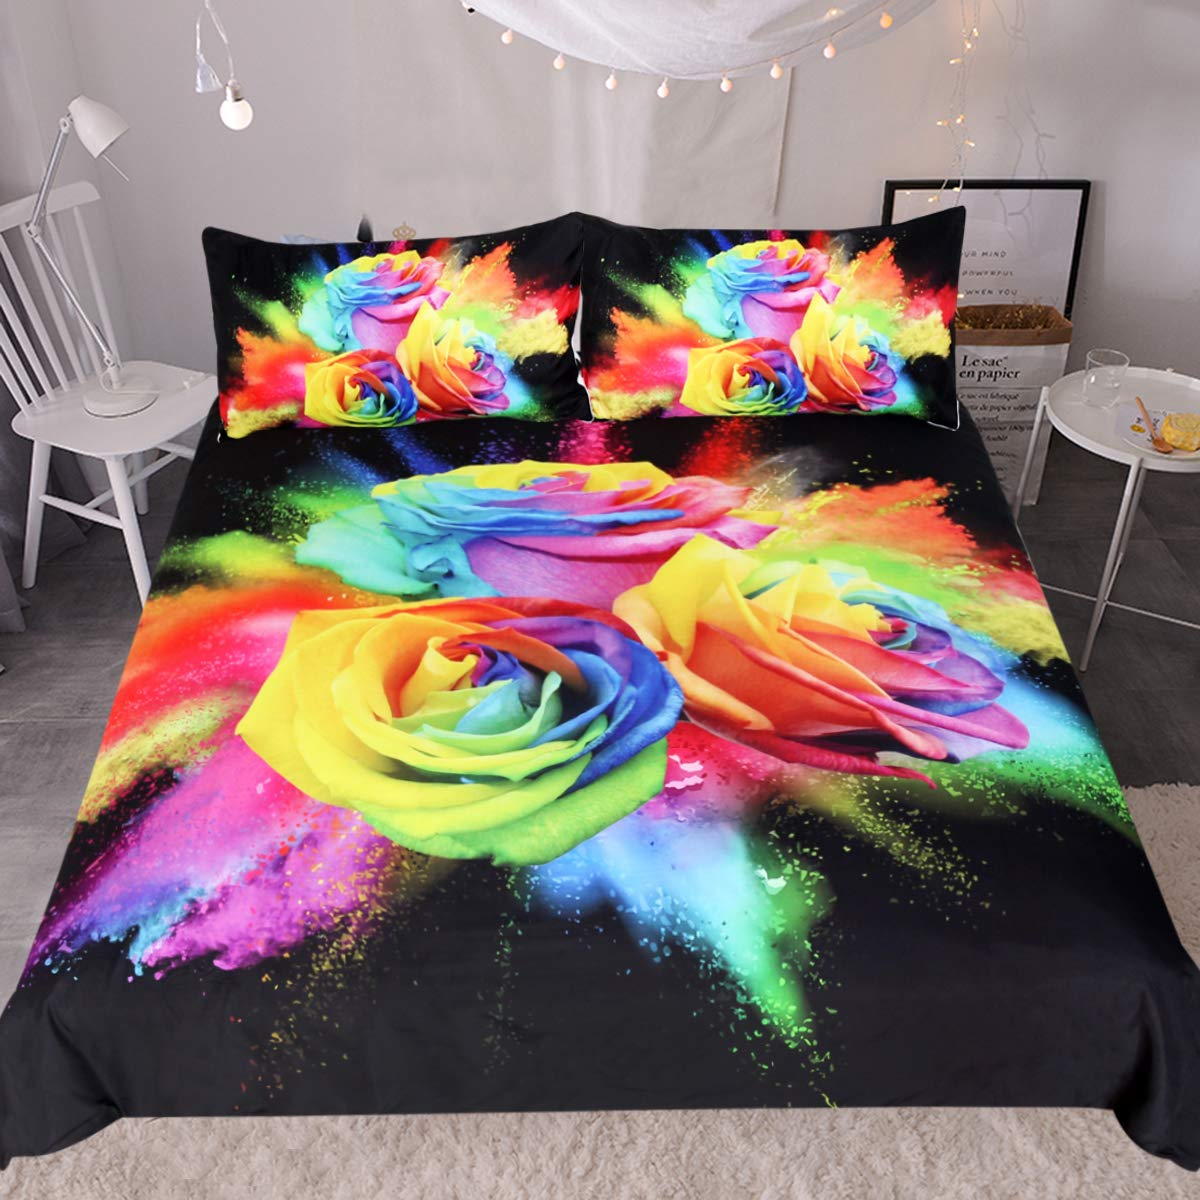 Sleepwish Rainbow Rose Bedding Set 3 Piece Colorful Flowers Duvet Cover Hippie Bedspread Black Chic Bedding for Women (Twin)